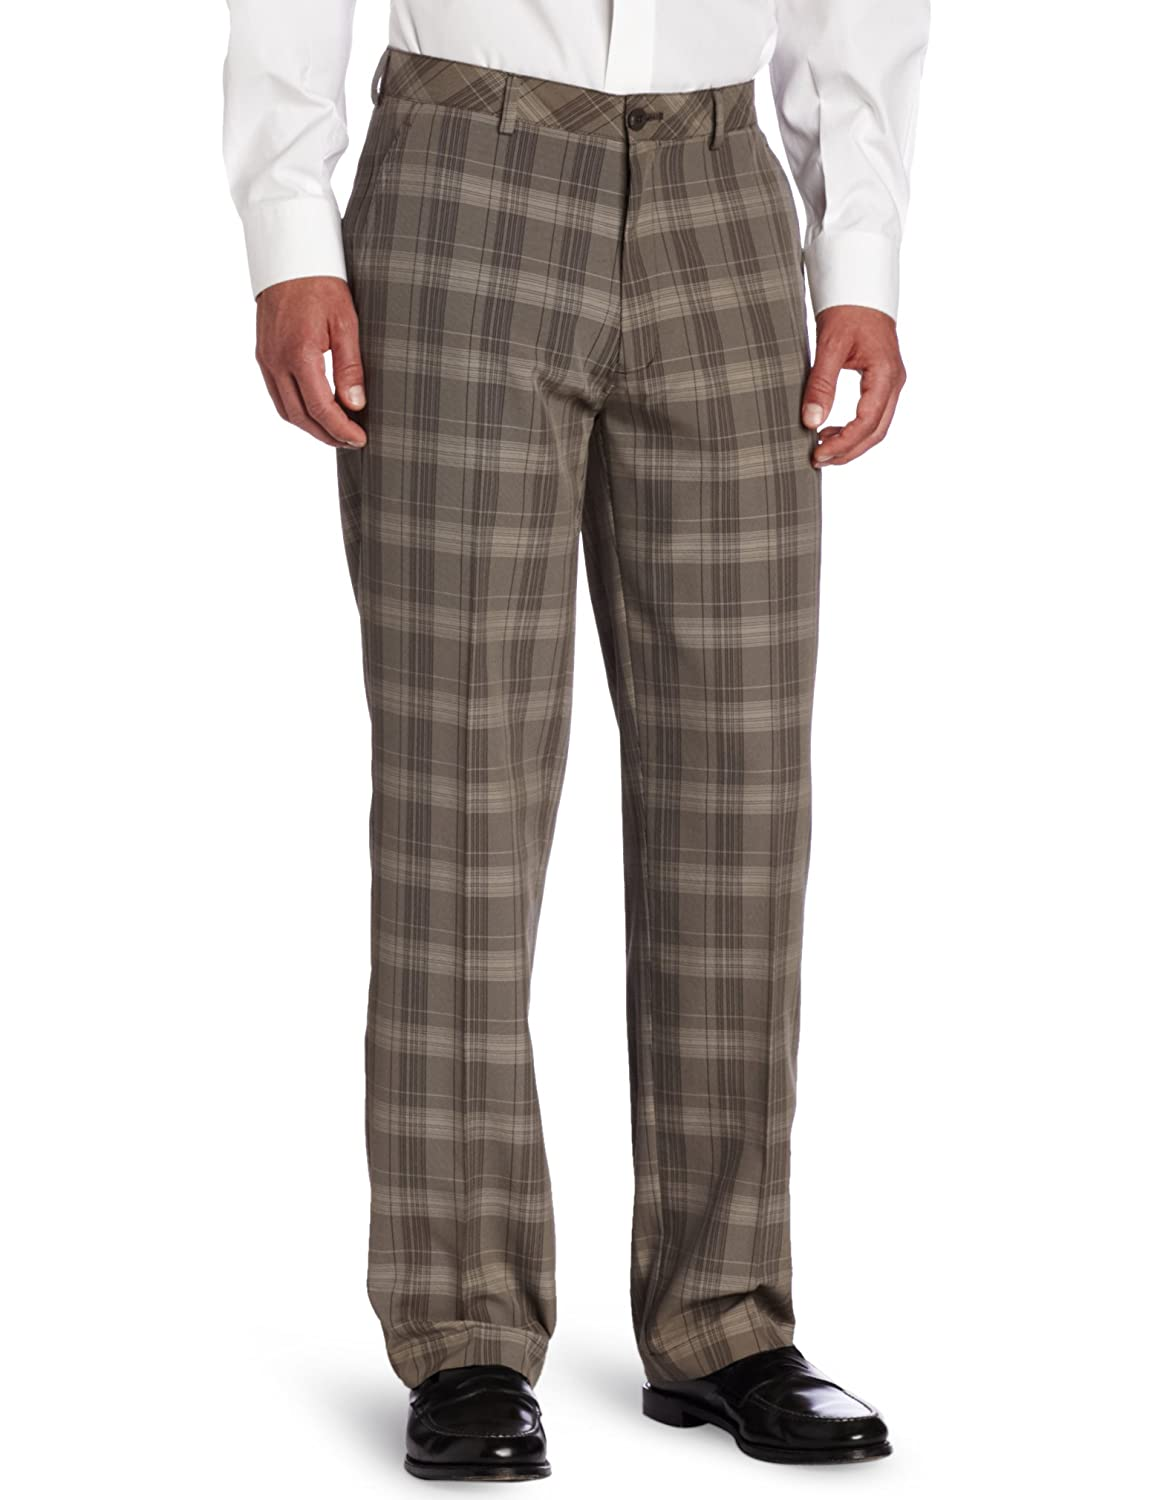 Victorian Men's Clothing Glen Plaid Straight Fit Flat Front Pant $49.19 AT vintagedancer.com